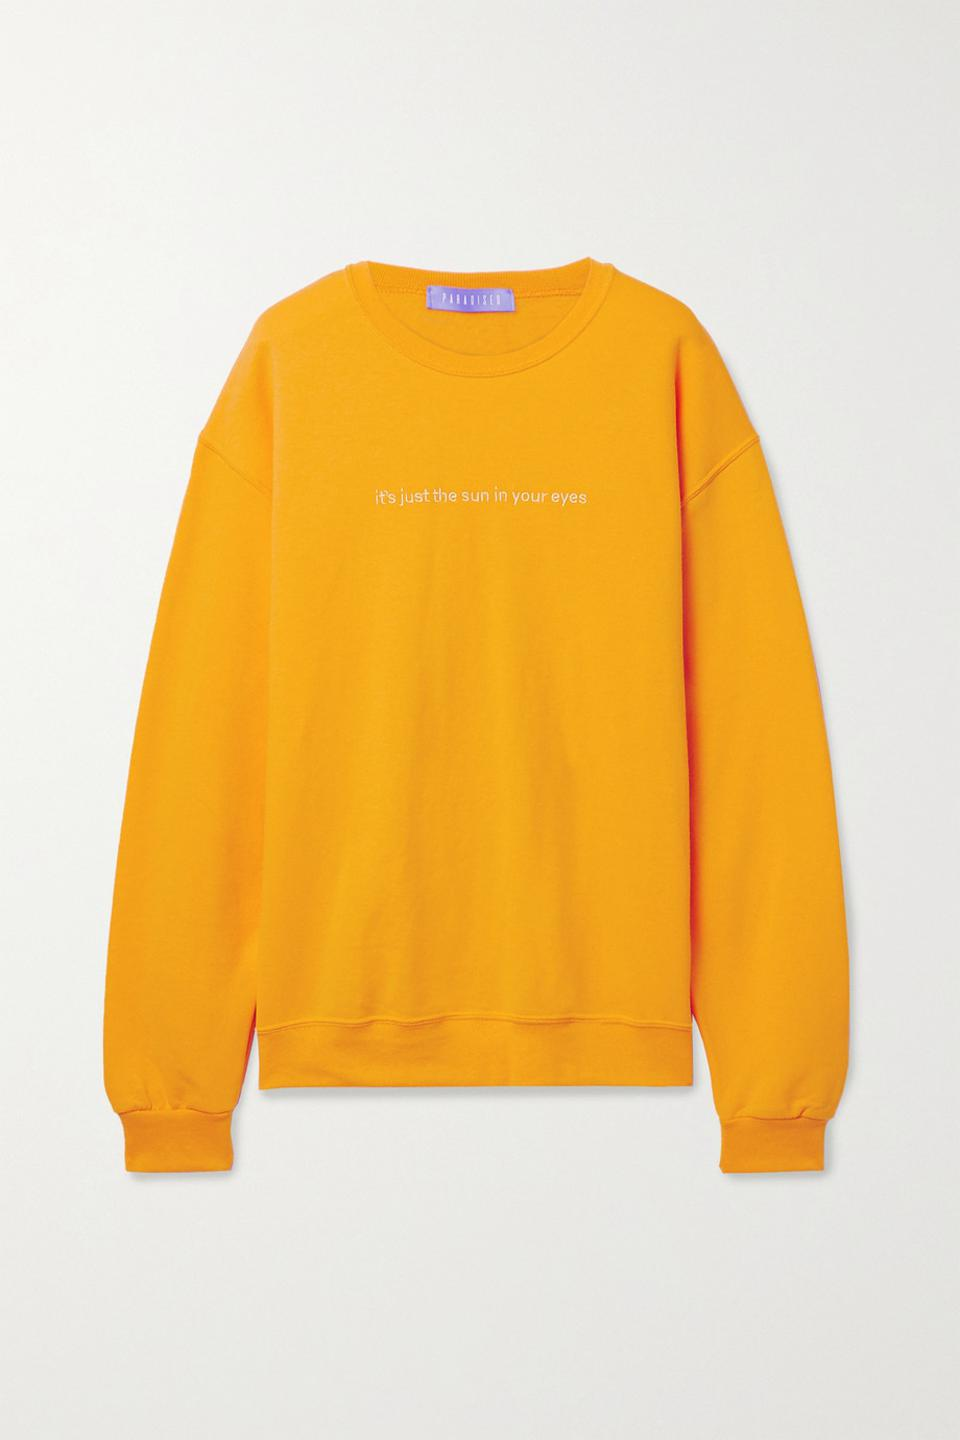 Paradised_Sun In Eyes embroidered cotton-blend jersey sweatshirt_$165